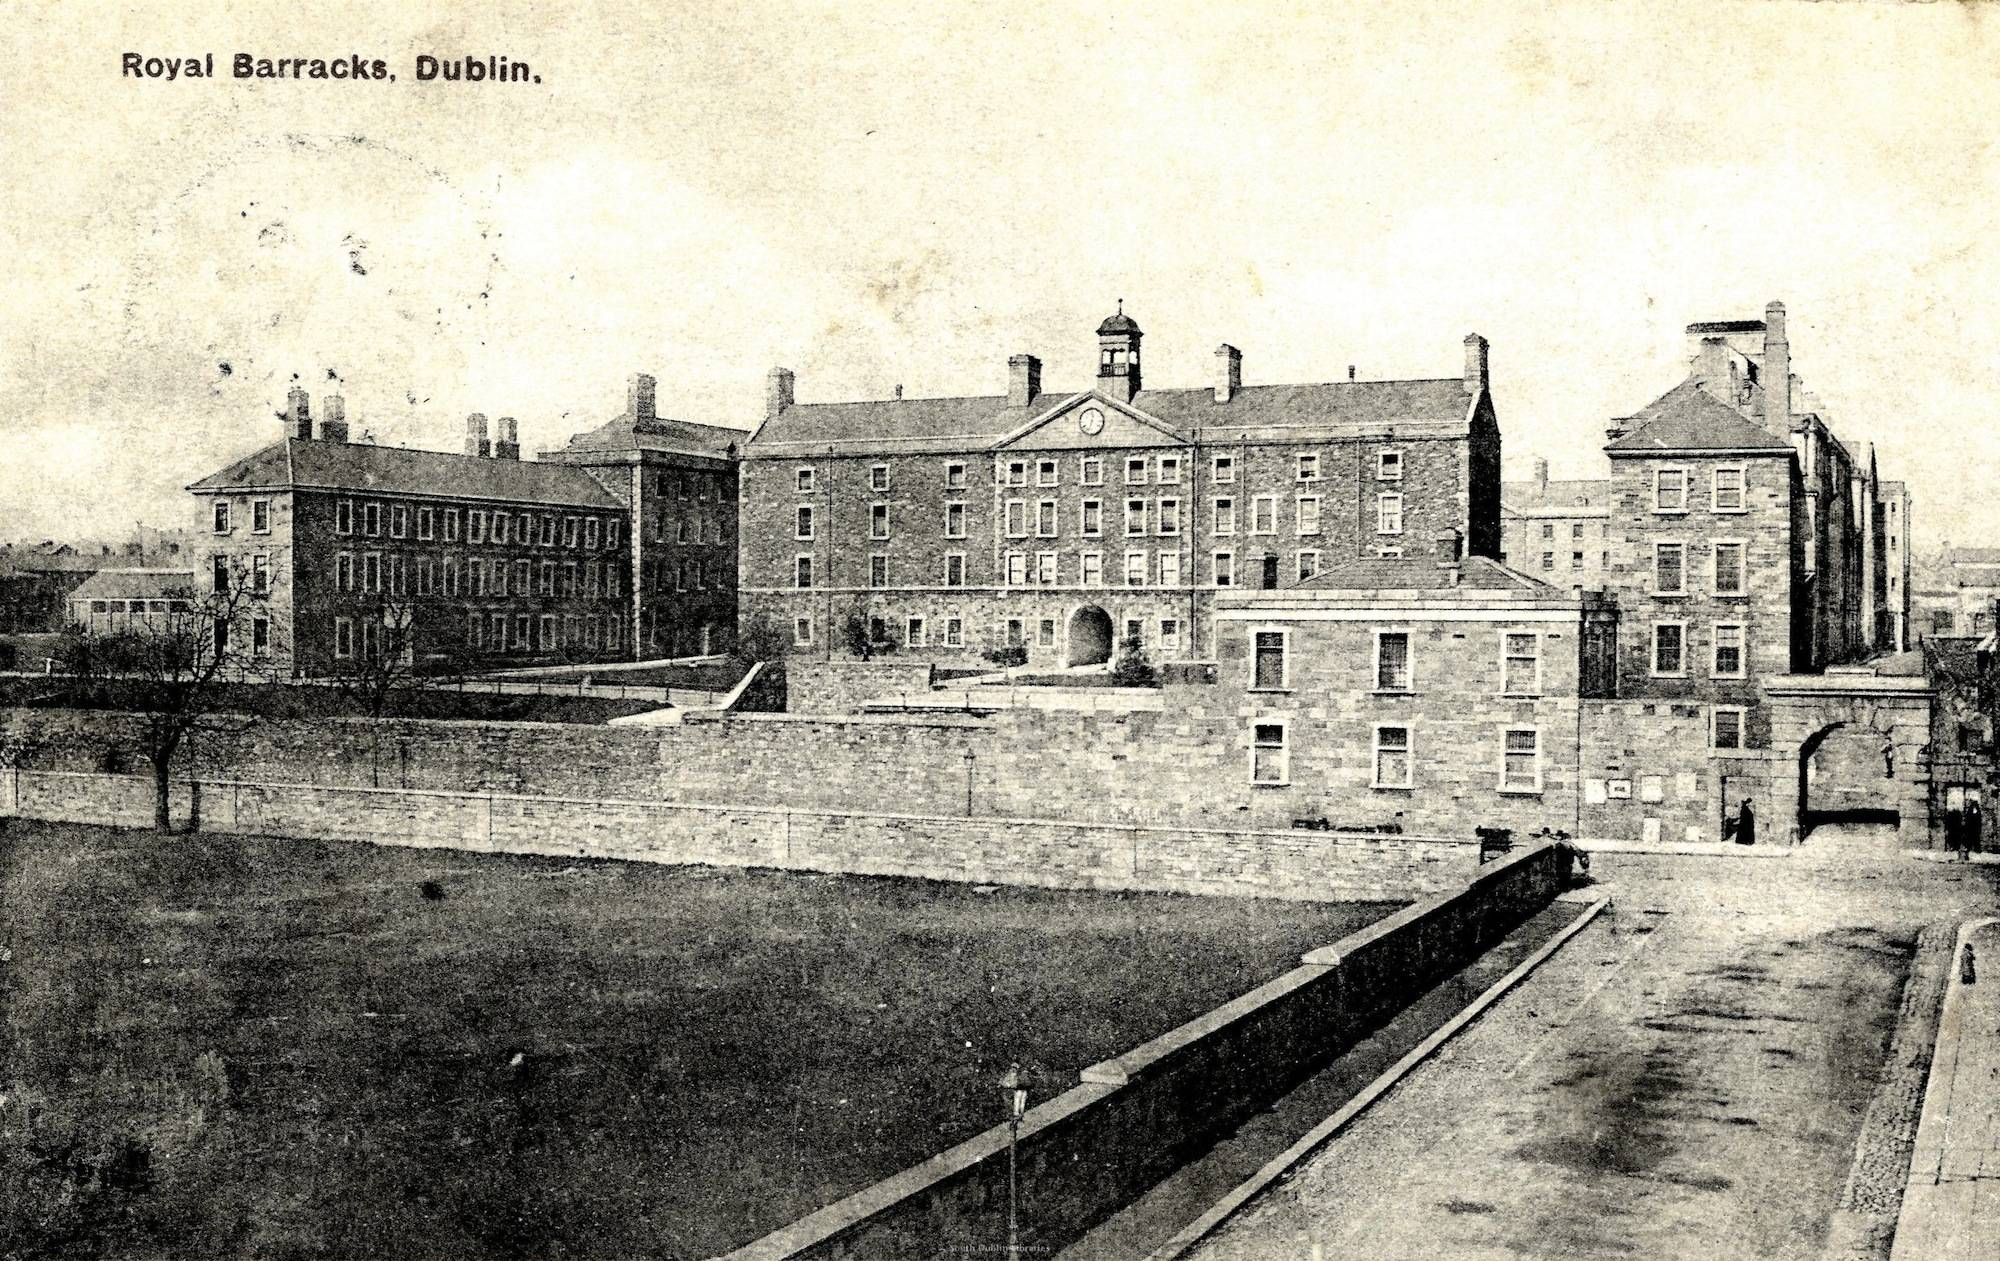 In 1902 the Royal Barracks (now Collins Barracks) acquired land for a military cemetery for the large force housed there. Courtesy of South Dublin County Libraries.